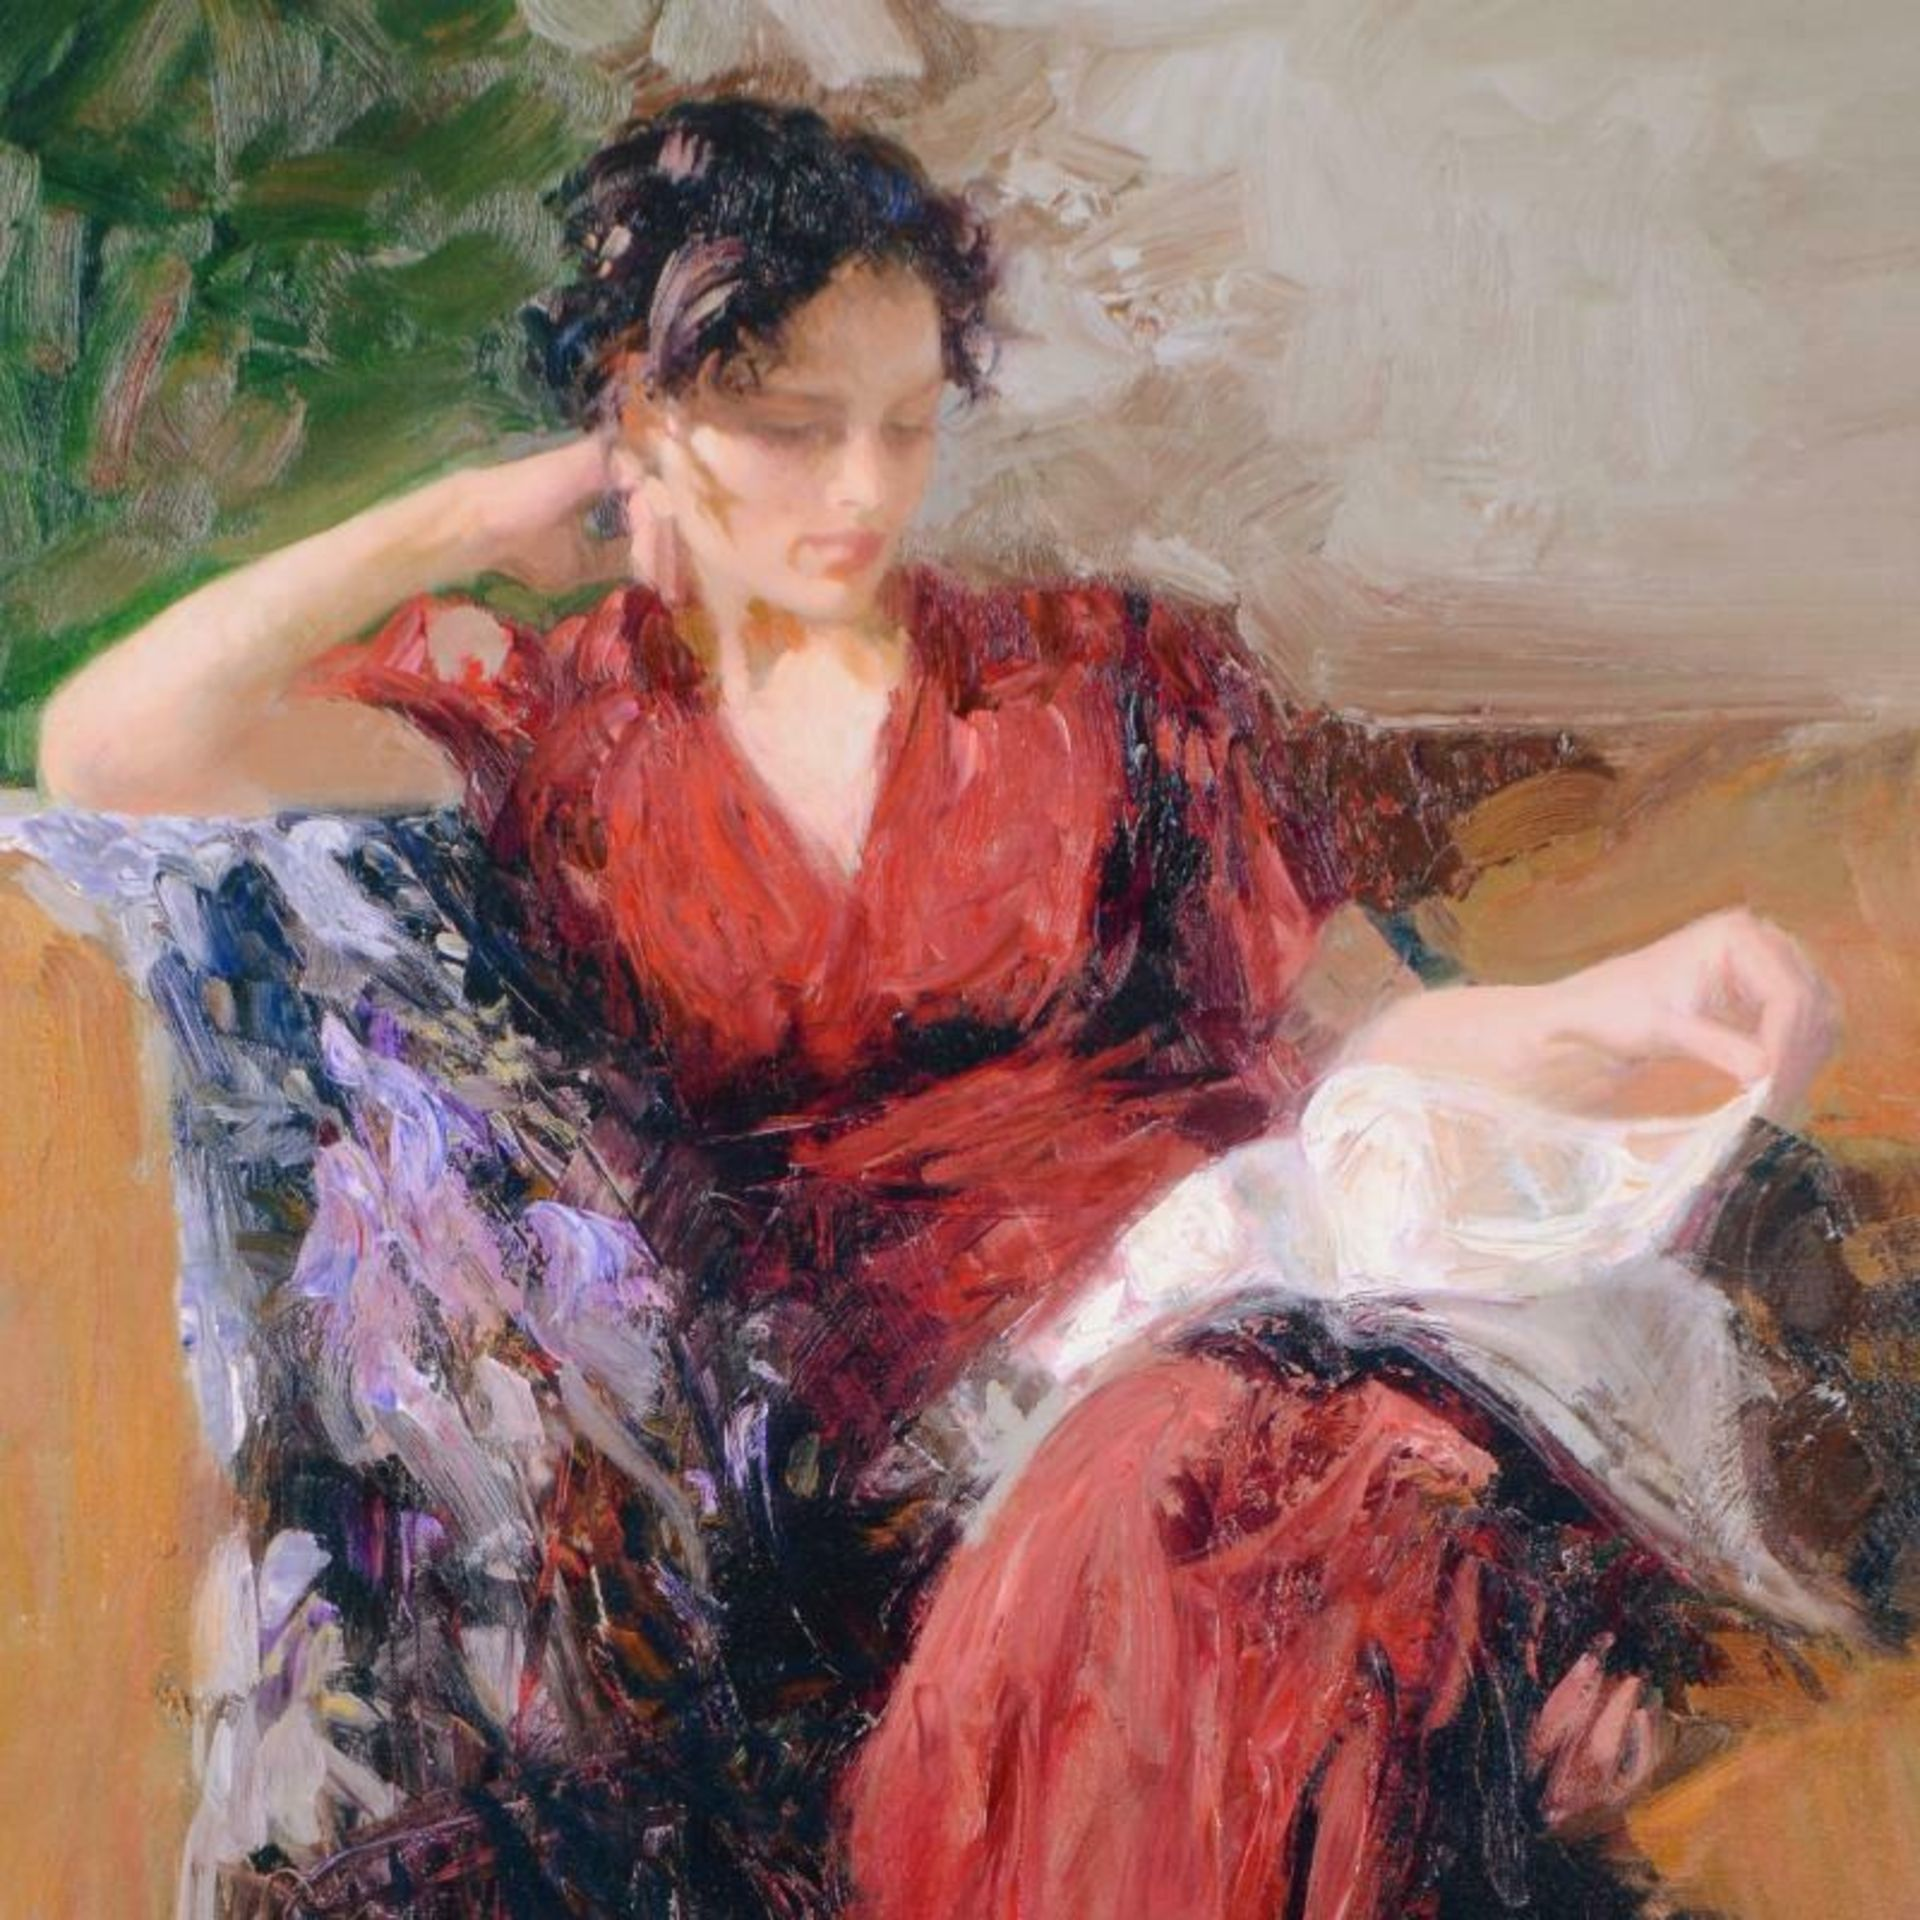 """Pino (1939-2010), """"Resting Time"""" Artist Embellished Limited Edition on Canvas, A - Image 2 of 2"""